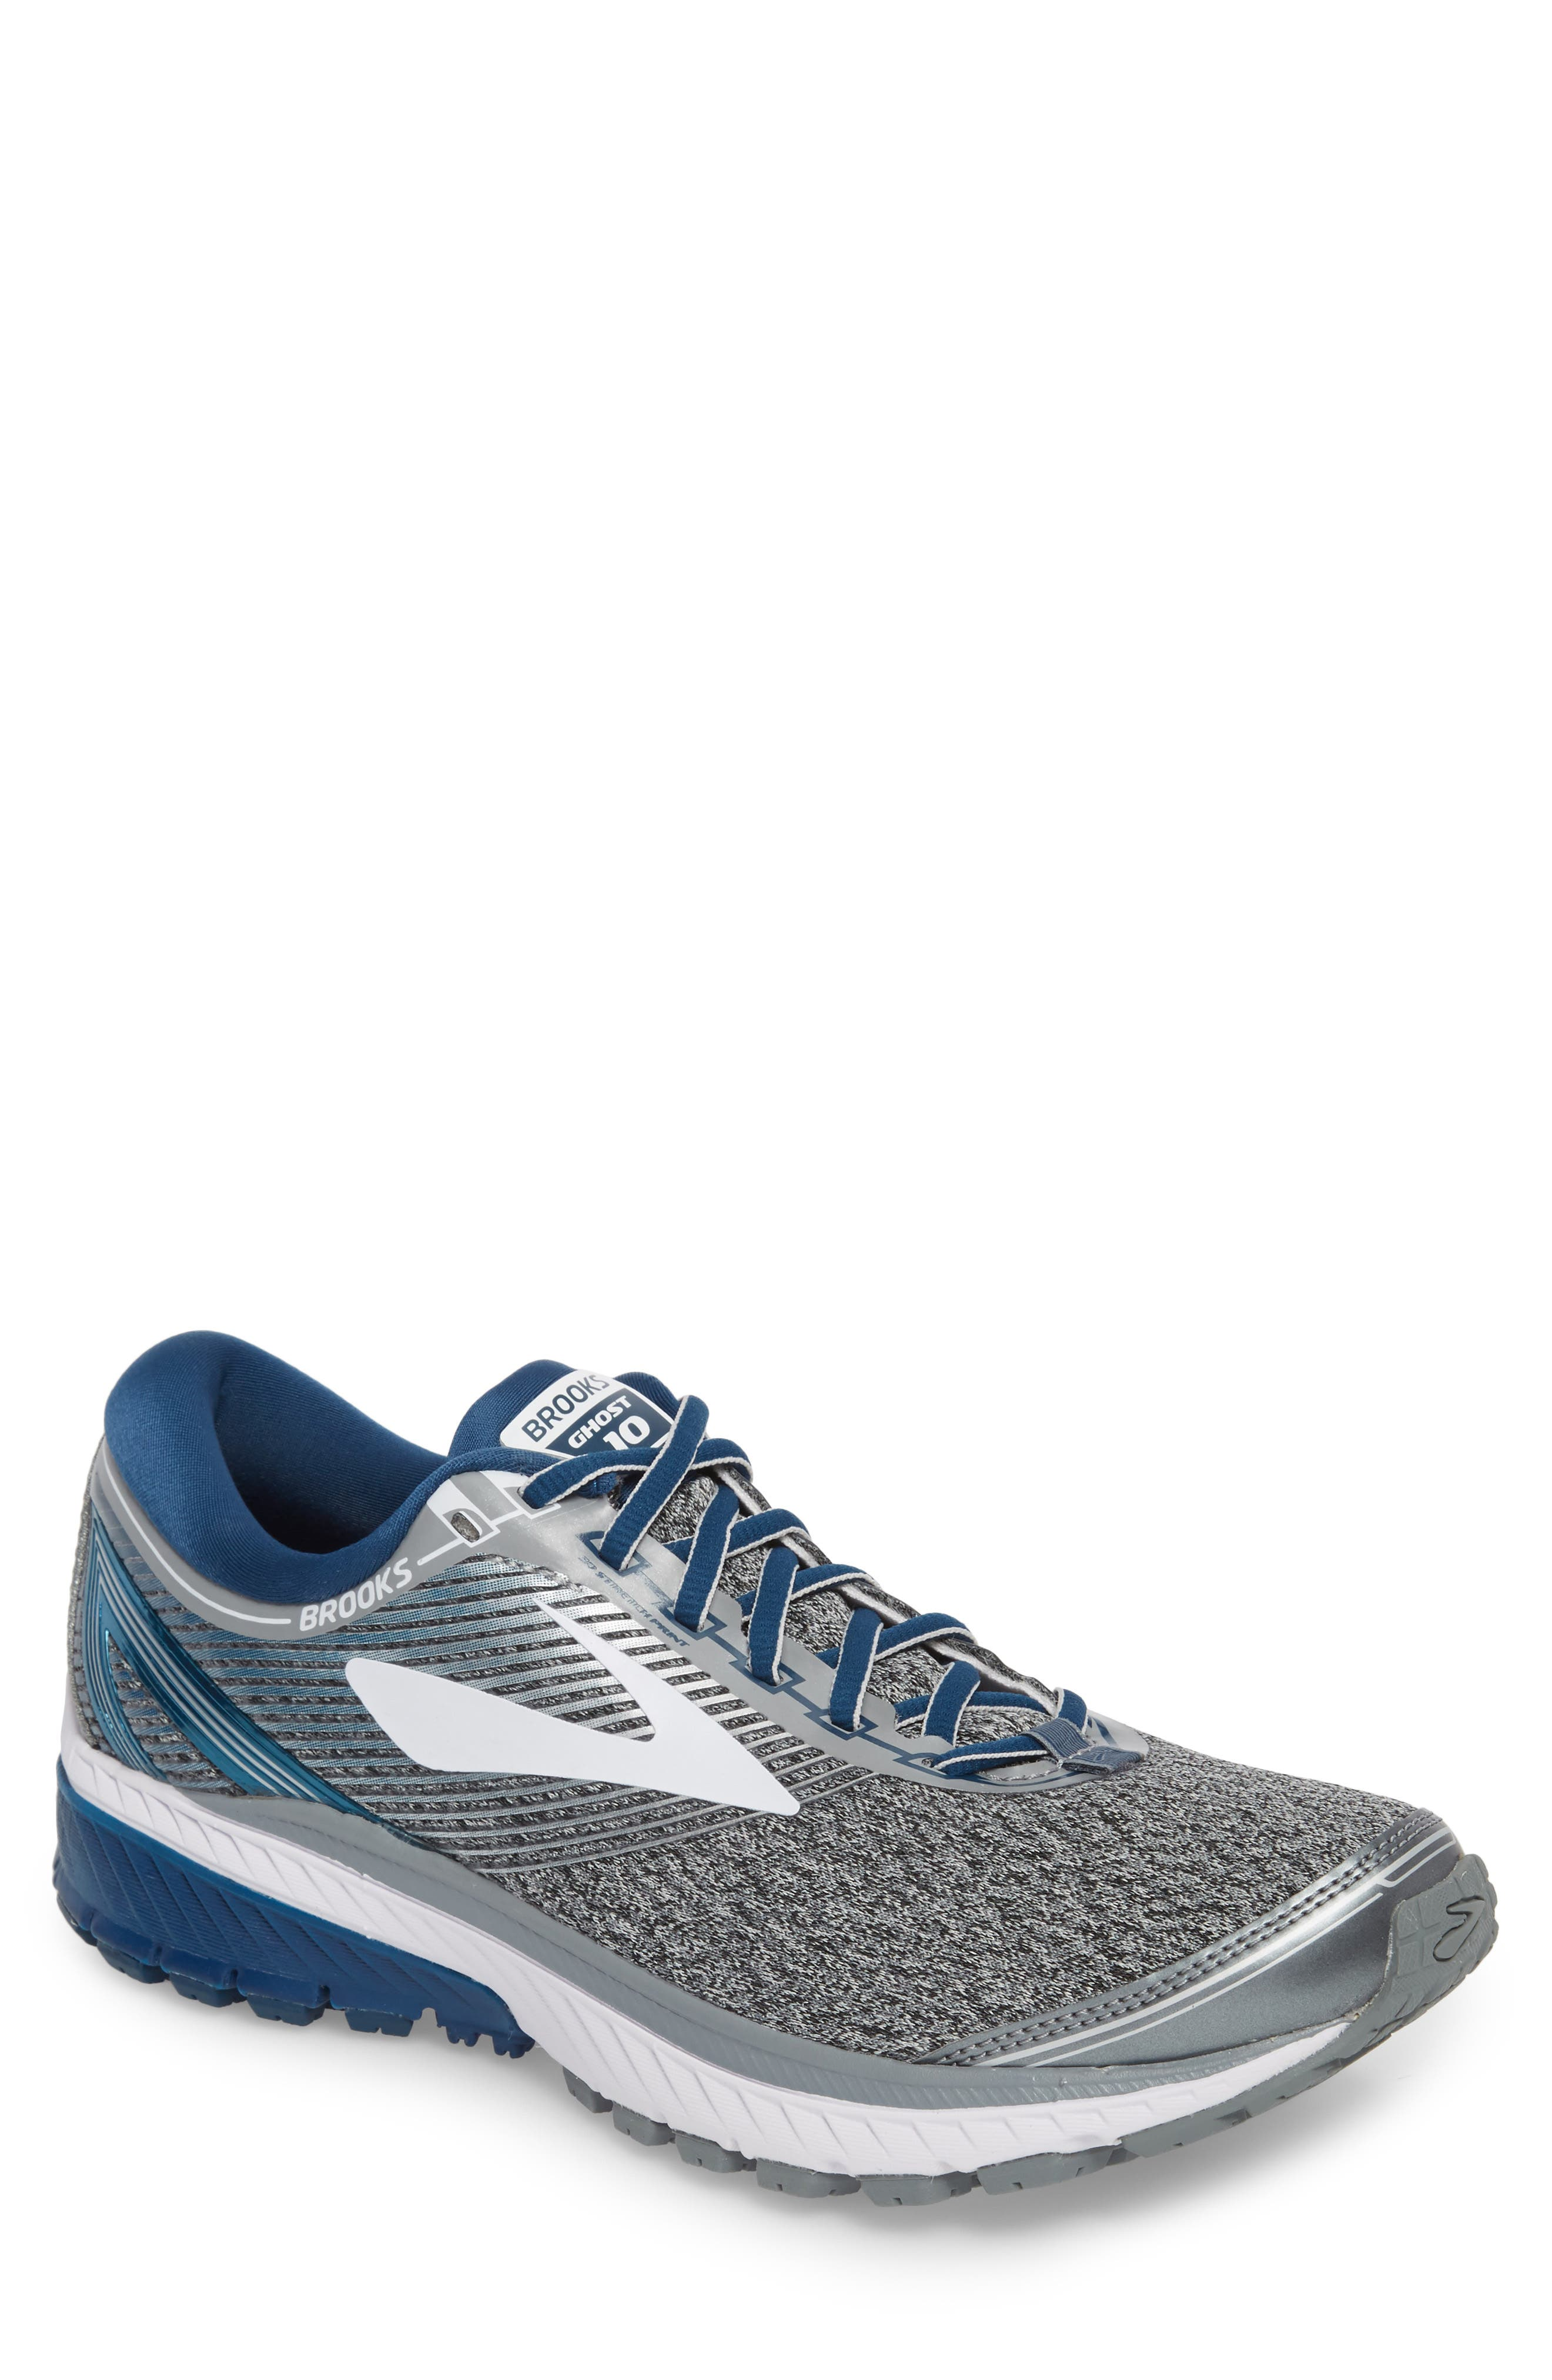 Ghost 10 Running Shoe,                         Main,                         color, SILVER/ BLUE/ WHITE